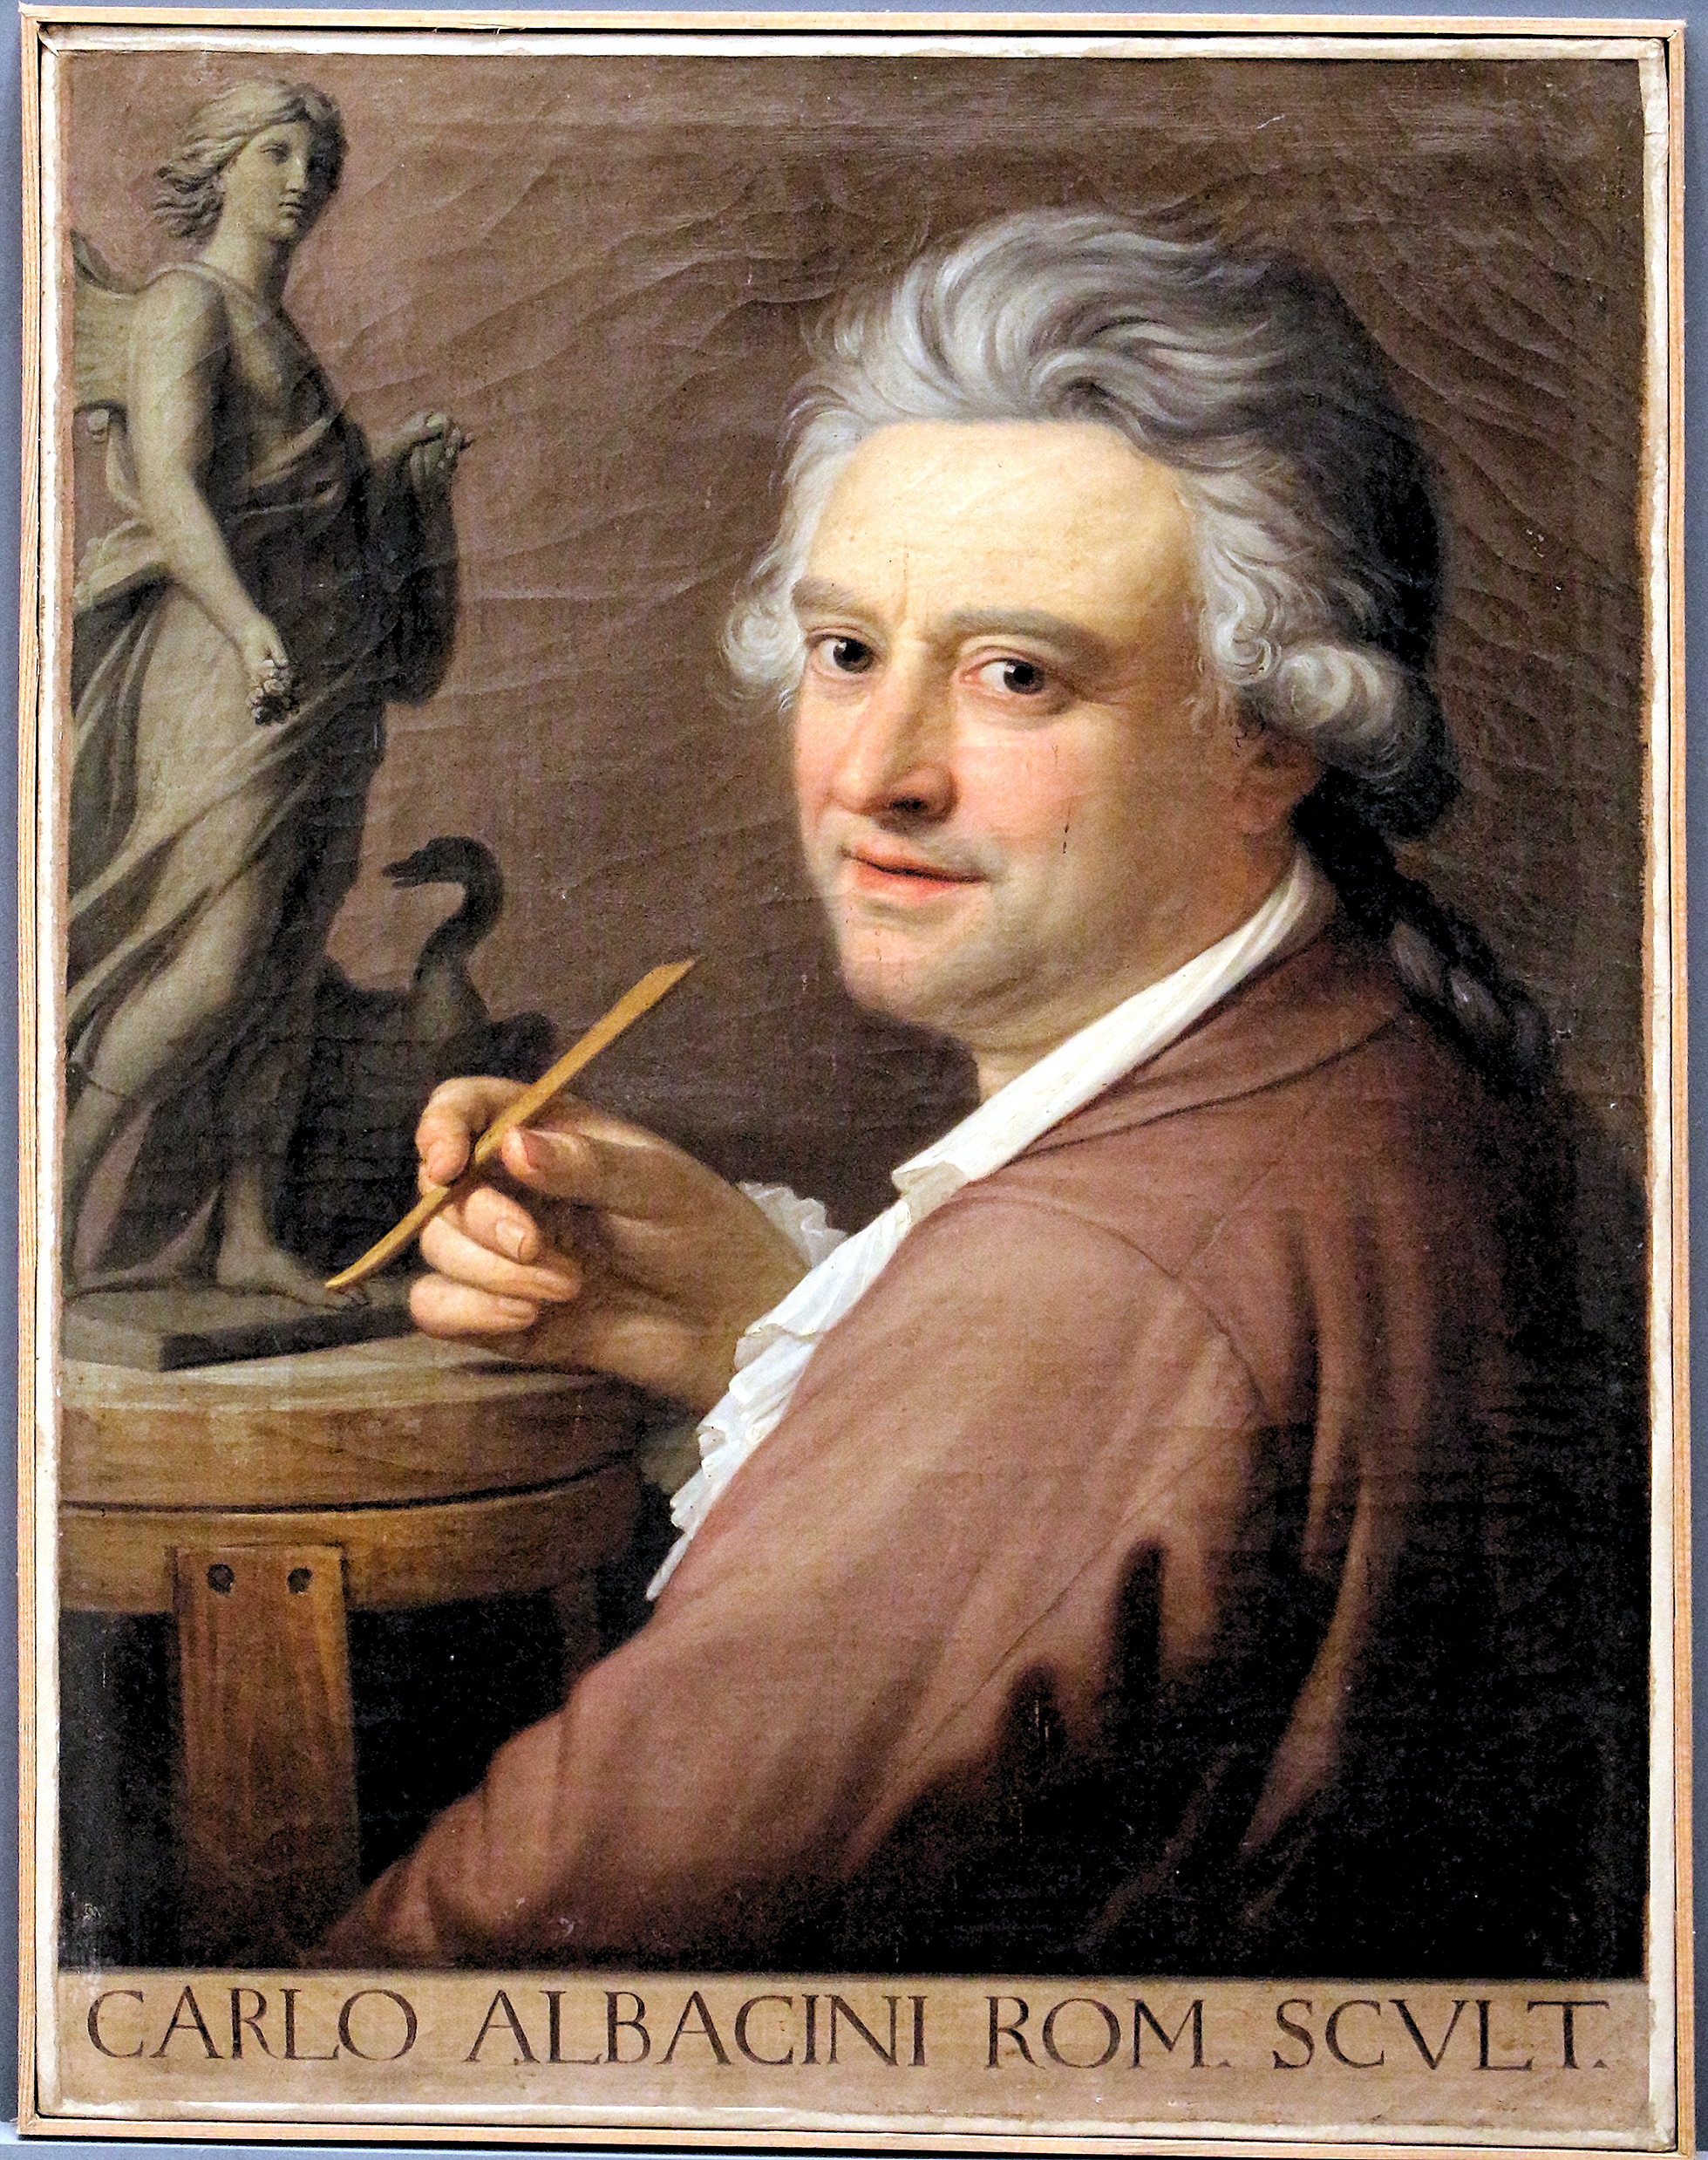 Painting by Stefano Tofanelli, attrbuted, portrait of the sculptor - Carlo Albacini